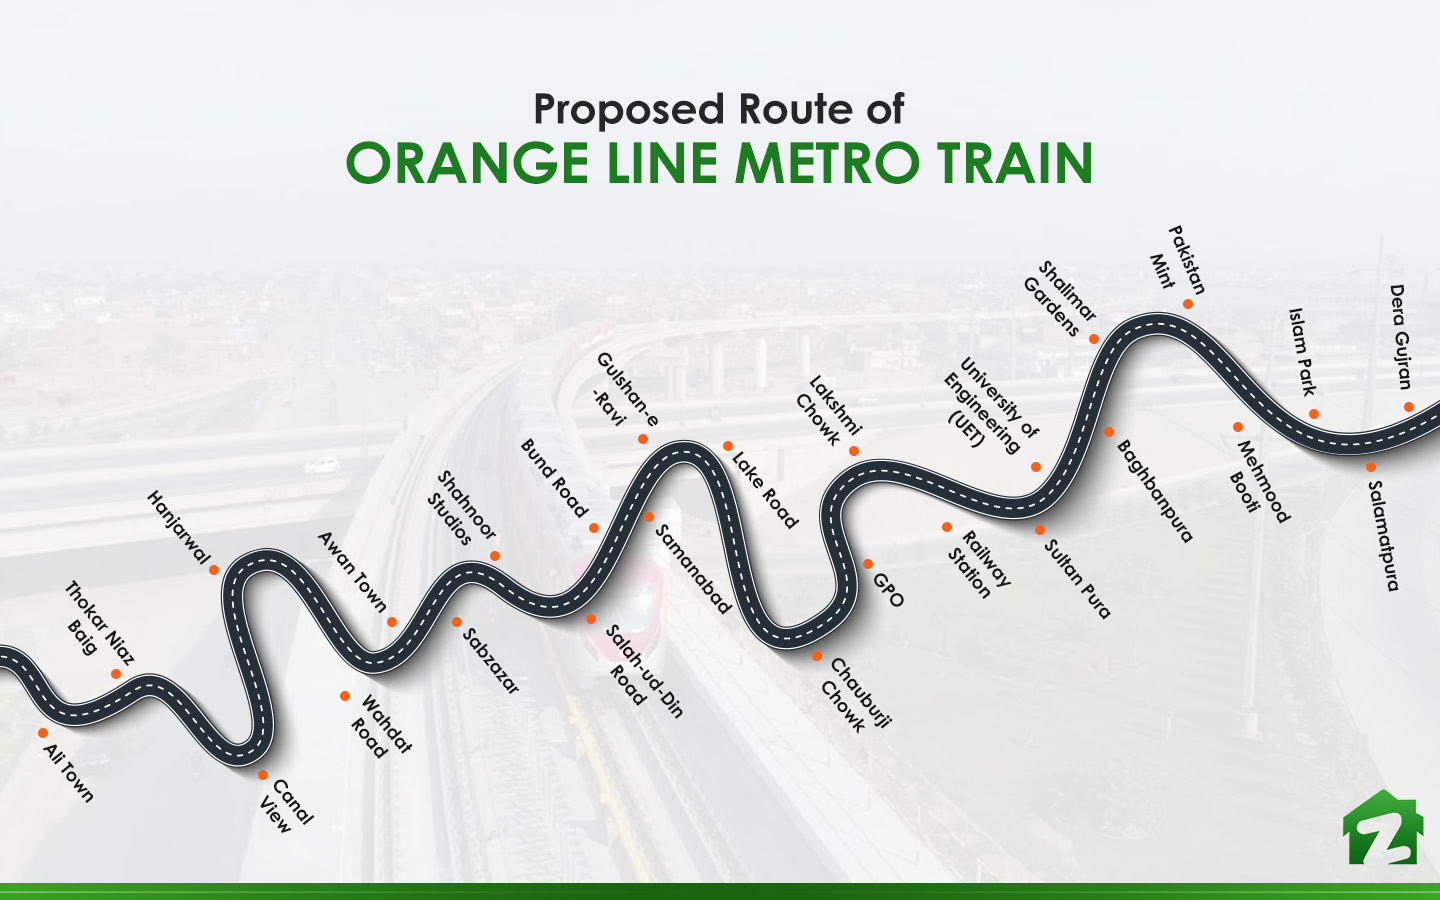 Orange Line Metro Train features many stations in the city.